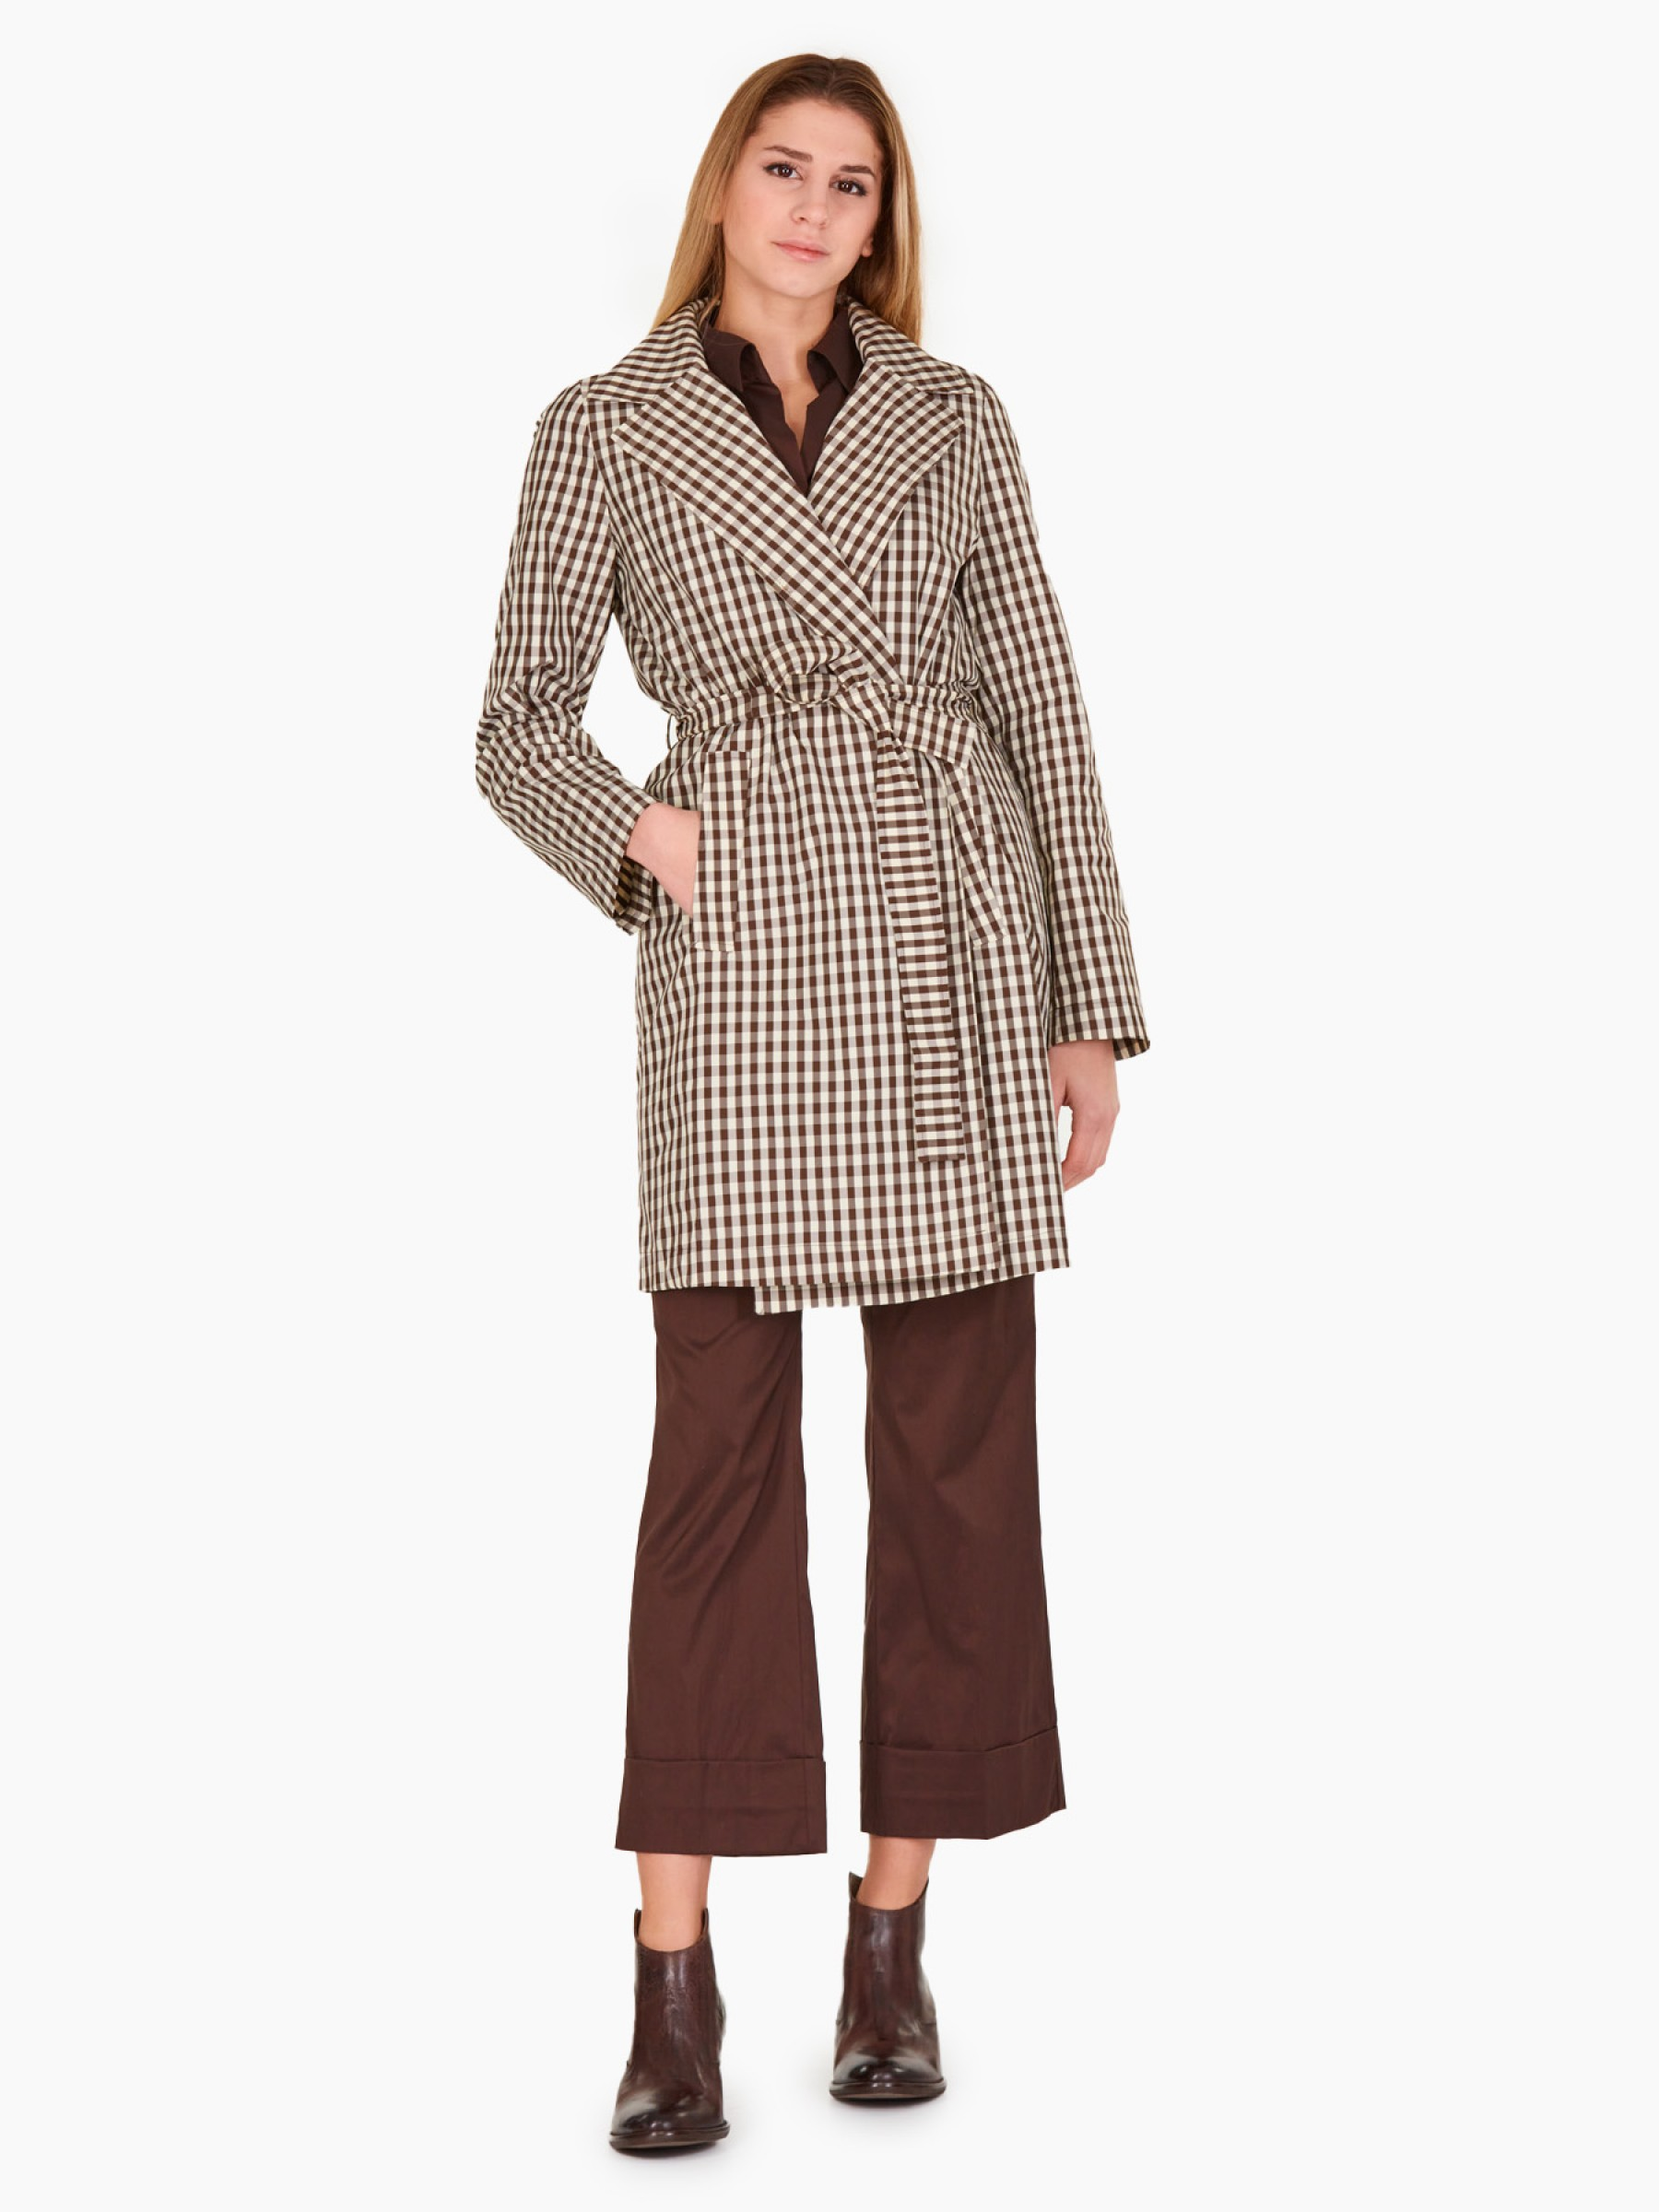 Emme Trench in Vichy PE2021 PRETURA-001-CACAO